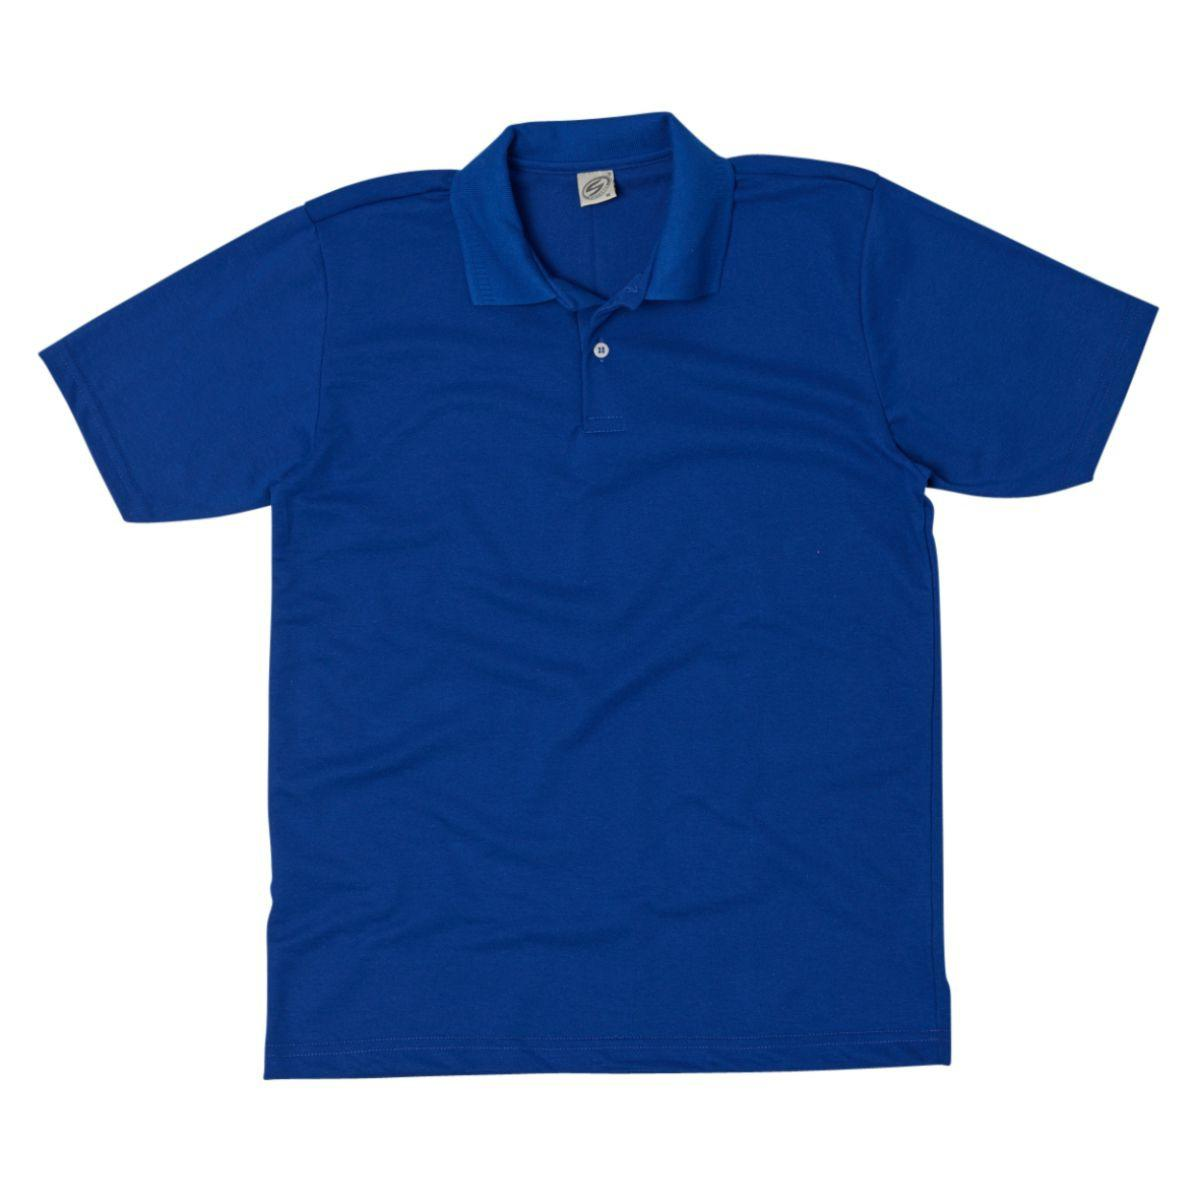 Camisa Polo Básica Piquet - Azul Royal